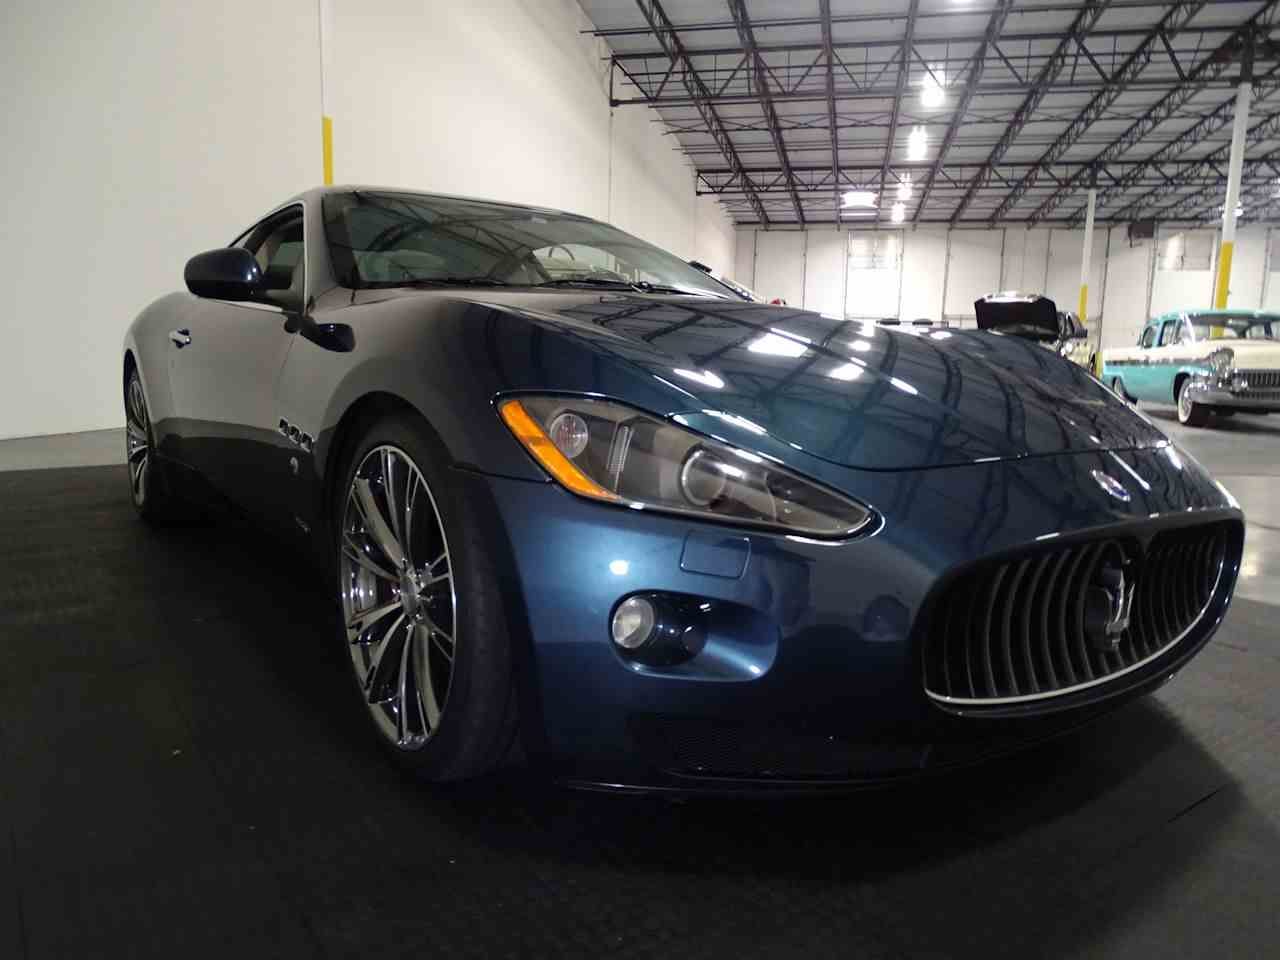 Large Picture of 2008 GranTurismo located in Houston Texas - $42,995.00 Offered by Gateway Classic Cars - Houston - MO4H